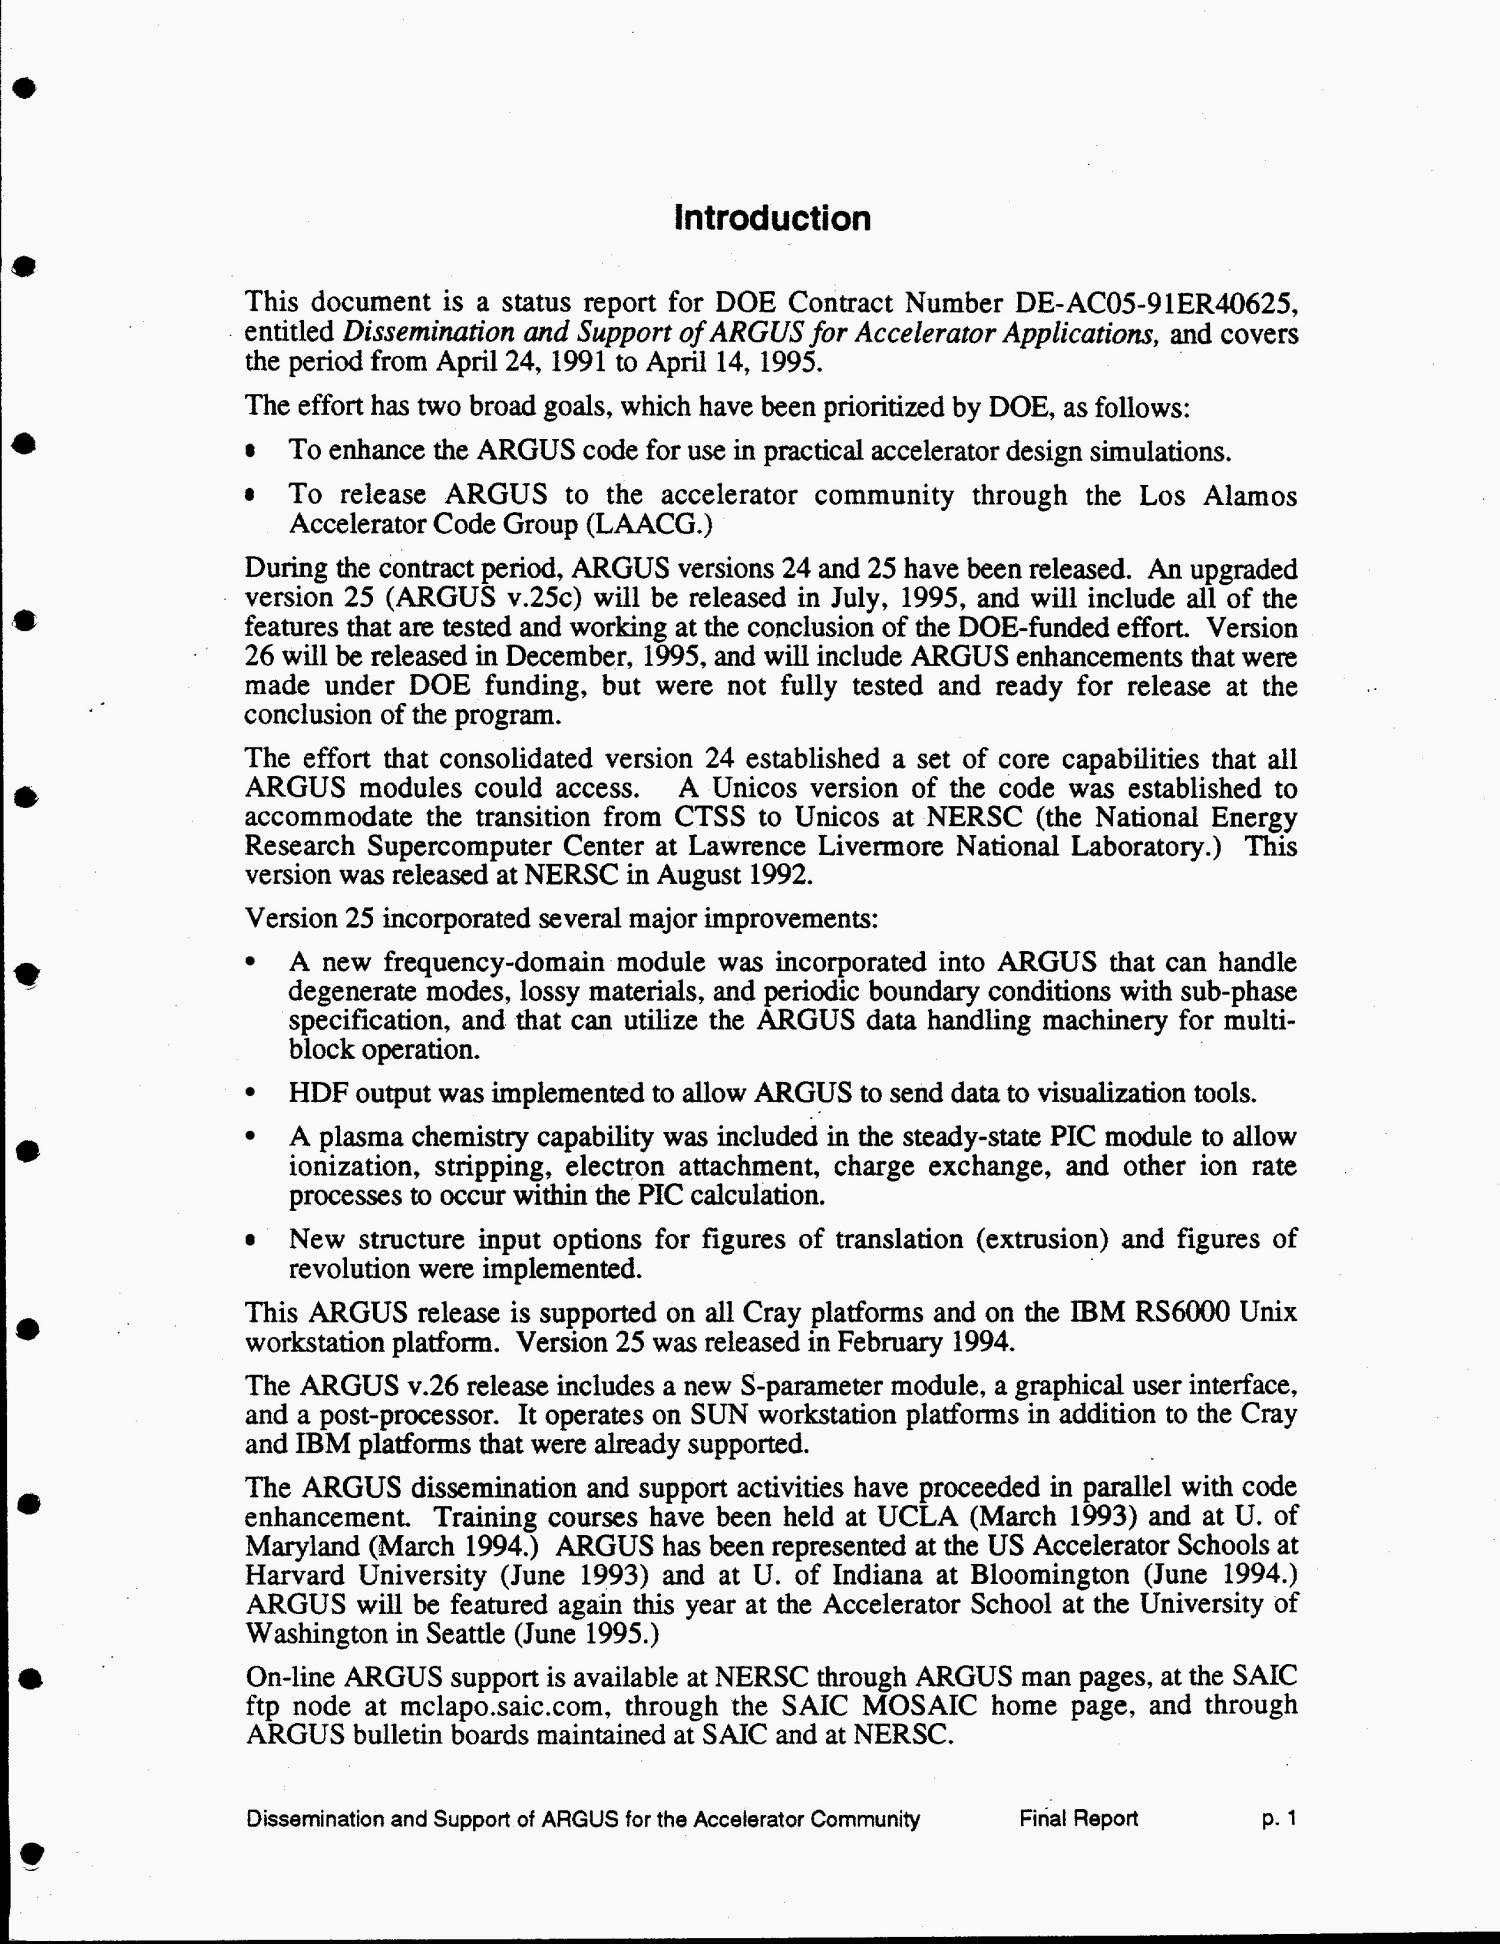 Dissemination and support of ARGUS for accelerator applications. Final report, April 24, 1991--April 14, 1995                                                                                                      [Sequence #]: 4 of 46